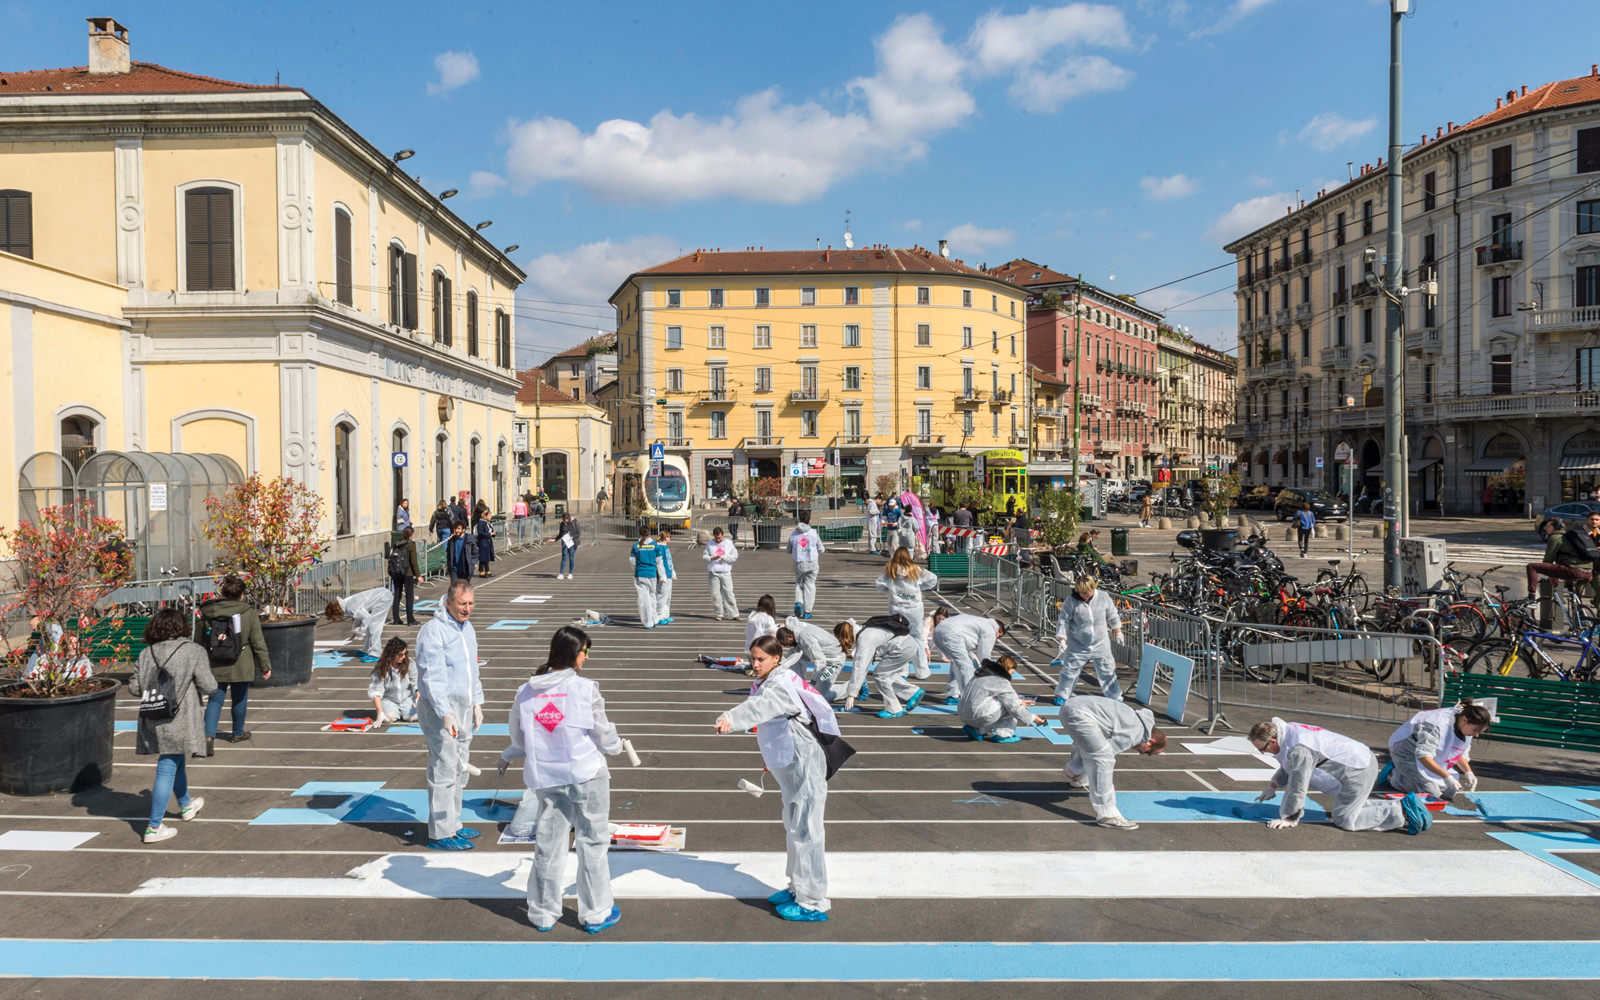 Bloomberg L.P. volunteers paint a pedestrian plaza in Milan, Italy, designed by the Bloomberg Associates team in partnership with the city.